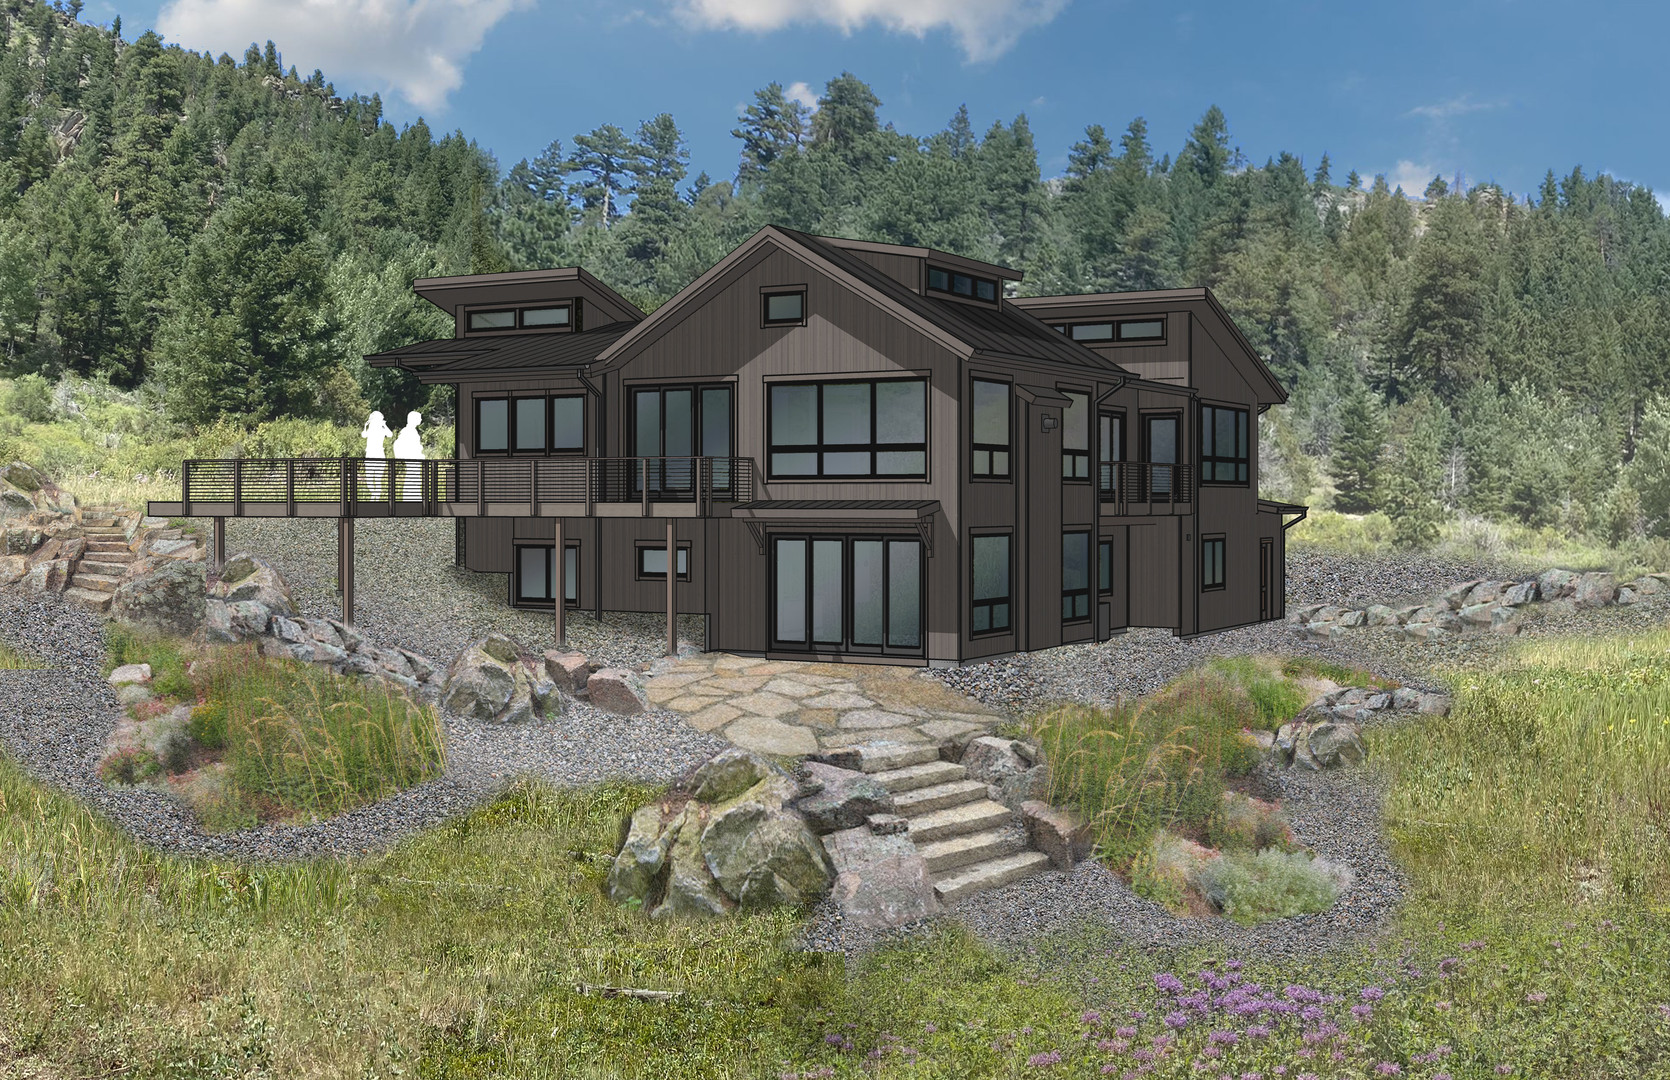 Rendering of Rustic Mountain home Project